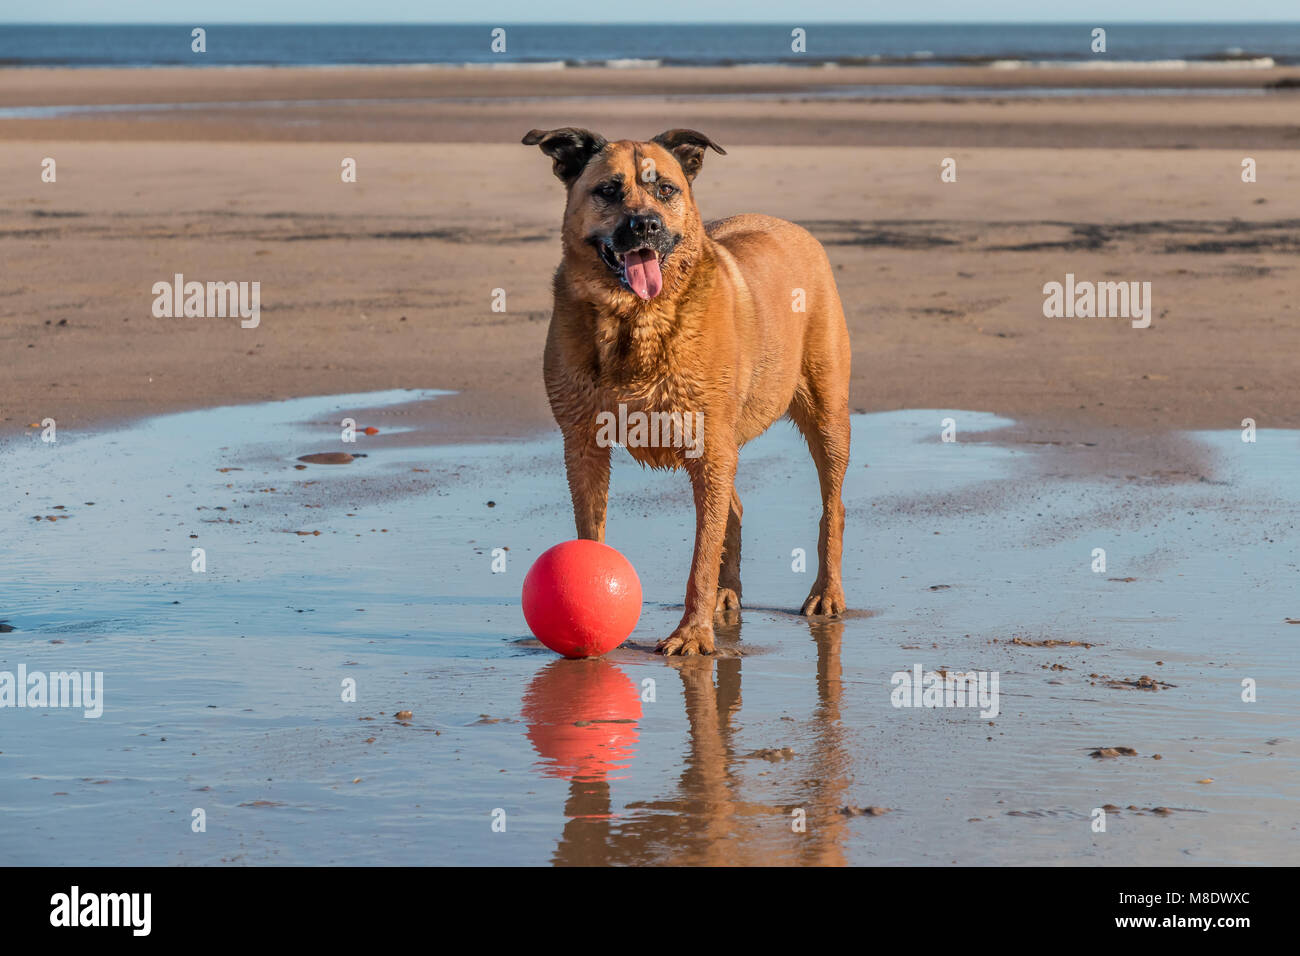 A mongrel tan coloured dog playing with a bright red ball on a beach at Alnmouth, Northumberland Coast AONB, UK - Stock Image